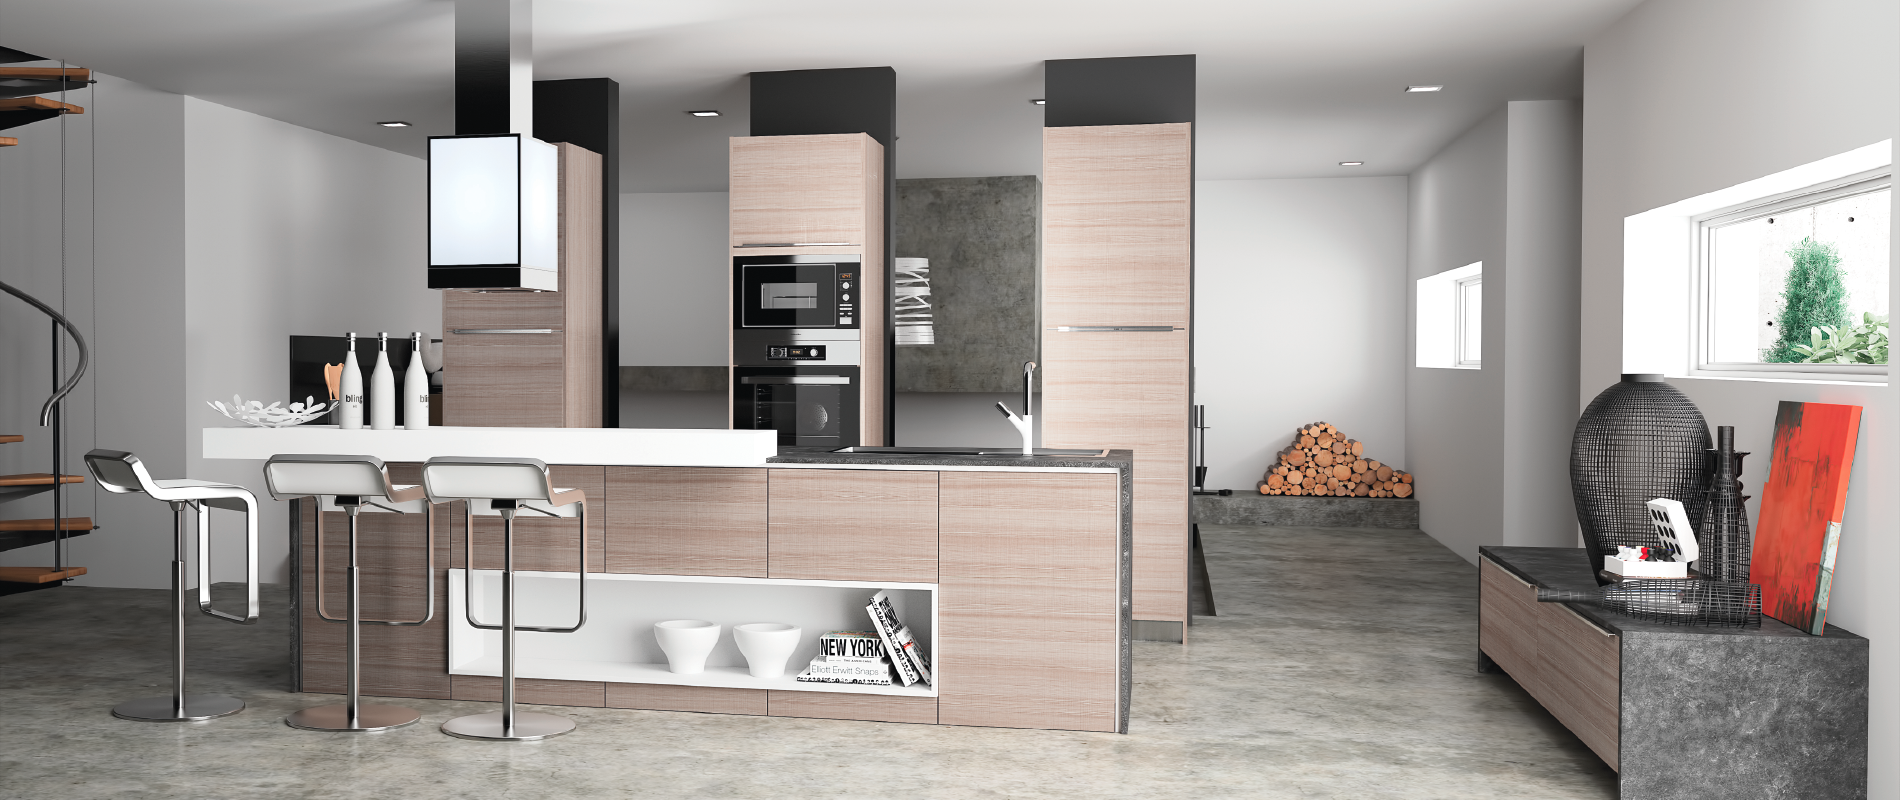 cuisine contemporaine de qualit monza 2 haut de gamme. Black Bedroom Furniture Sets. Home Design Ideas